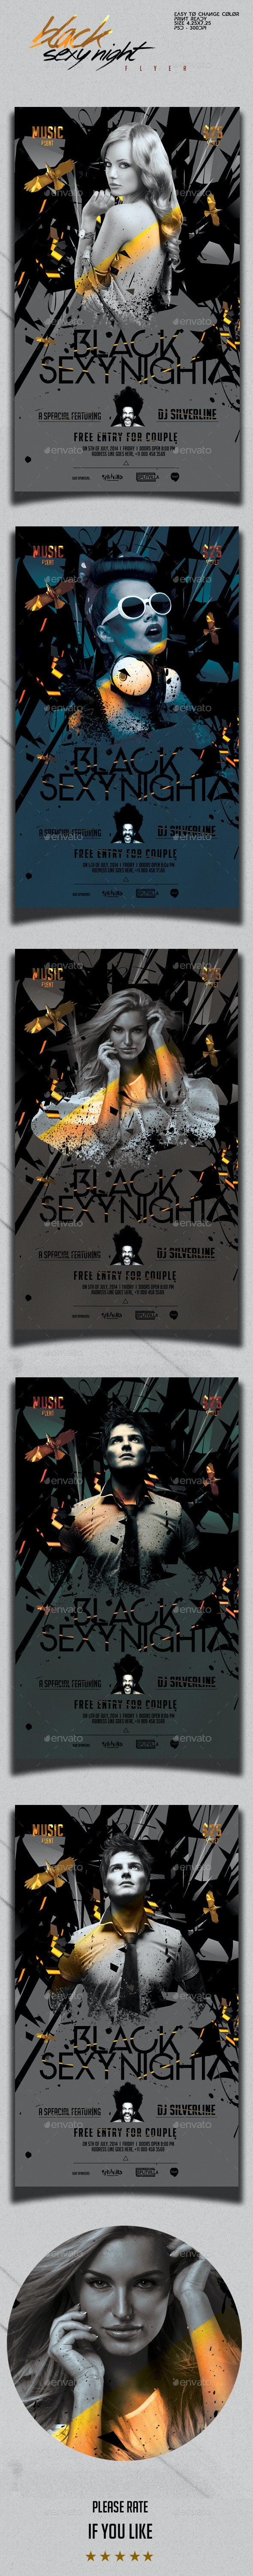 Black Sexy Night Party Flyer Template - Clubs & Parties Events